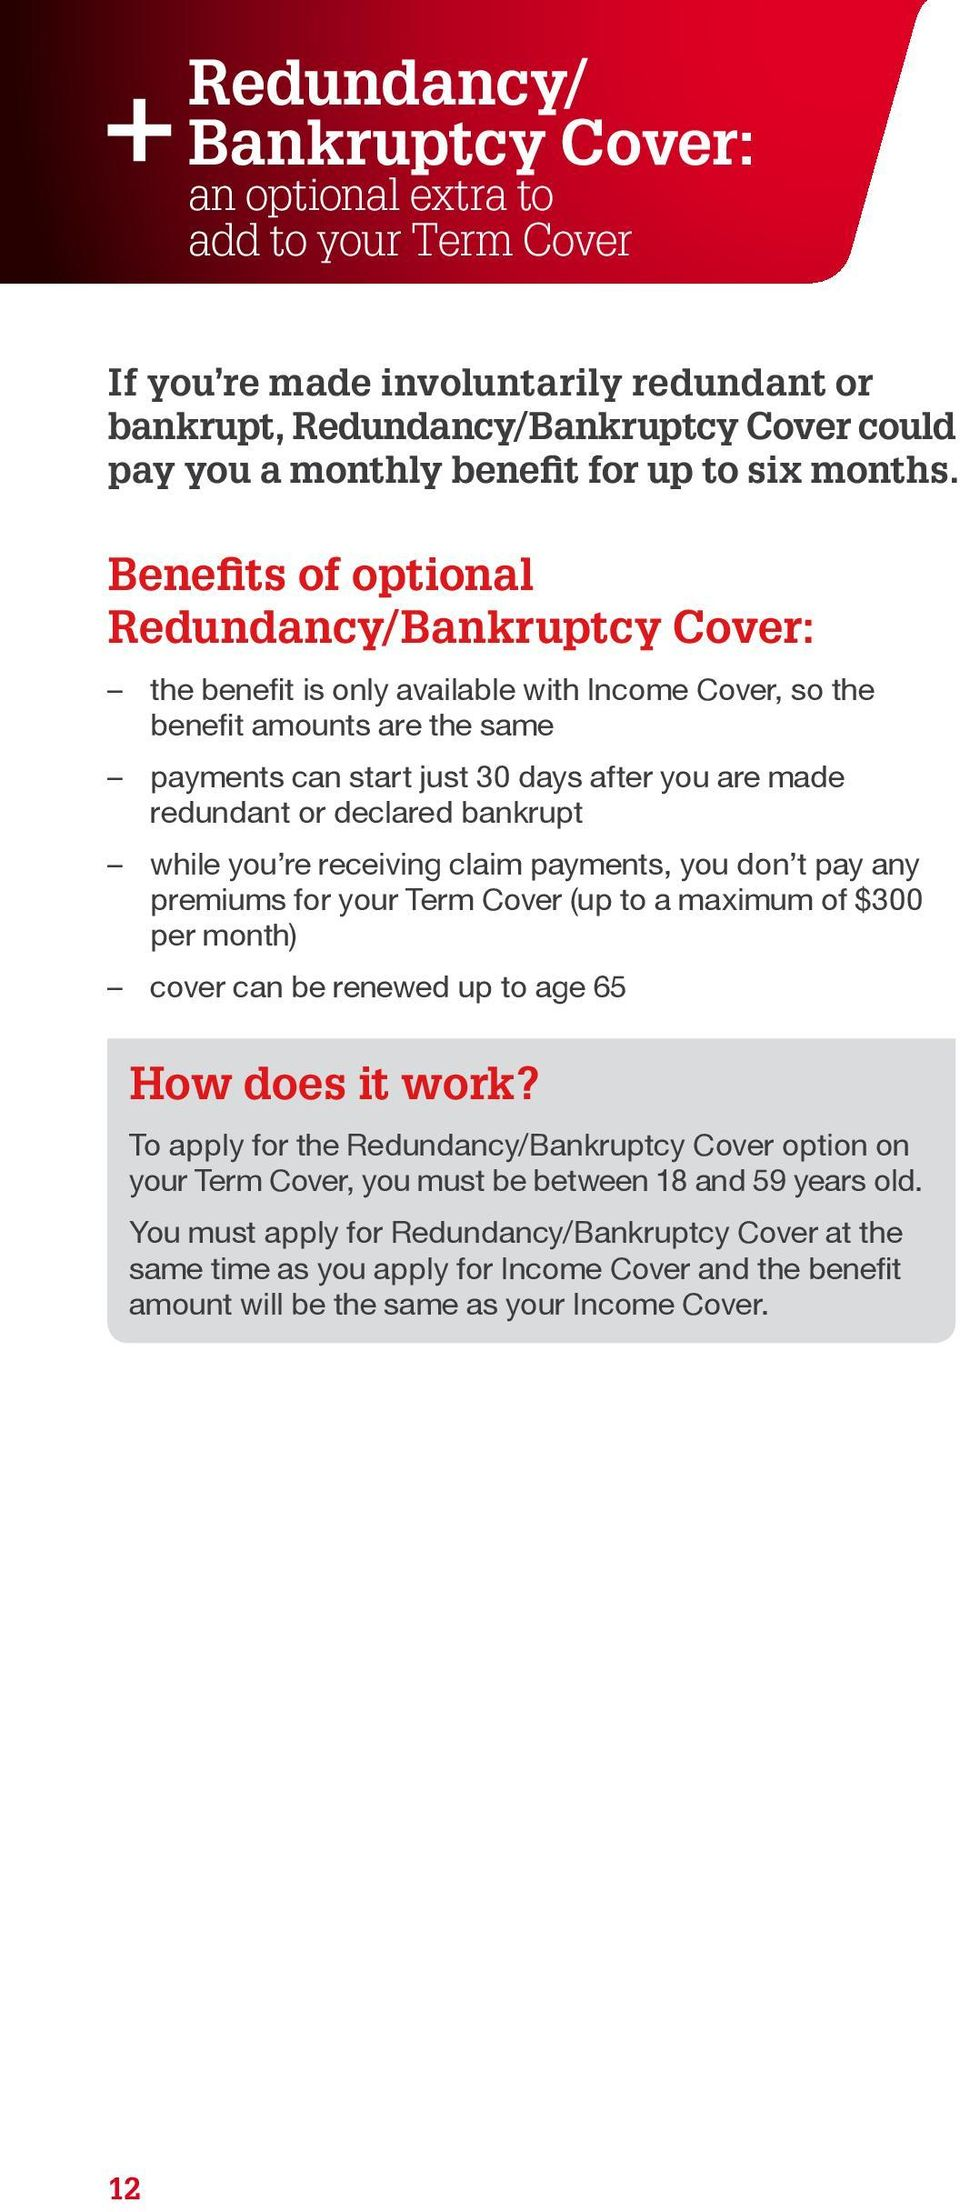 Benefits of optional Redundancy/Bankruptcy Cover: the benefit is only available with Income Cover, so the benefit amounts are the same payments can start just 30 days after you are made redundant or